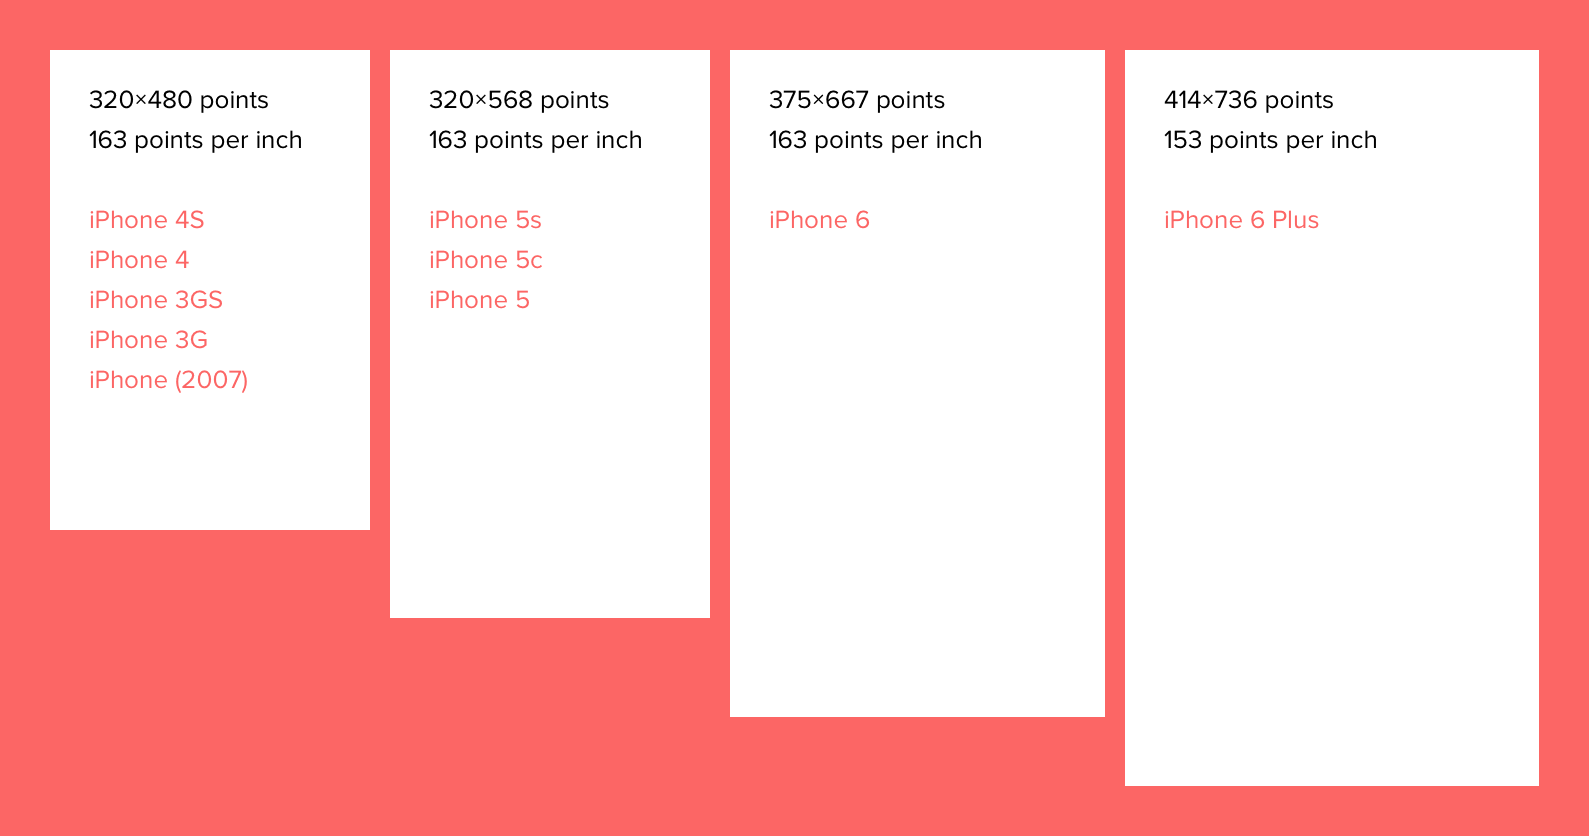 workflow-ios-sizes-in-points